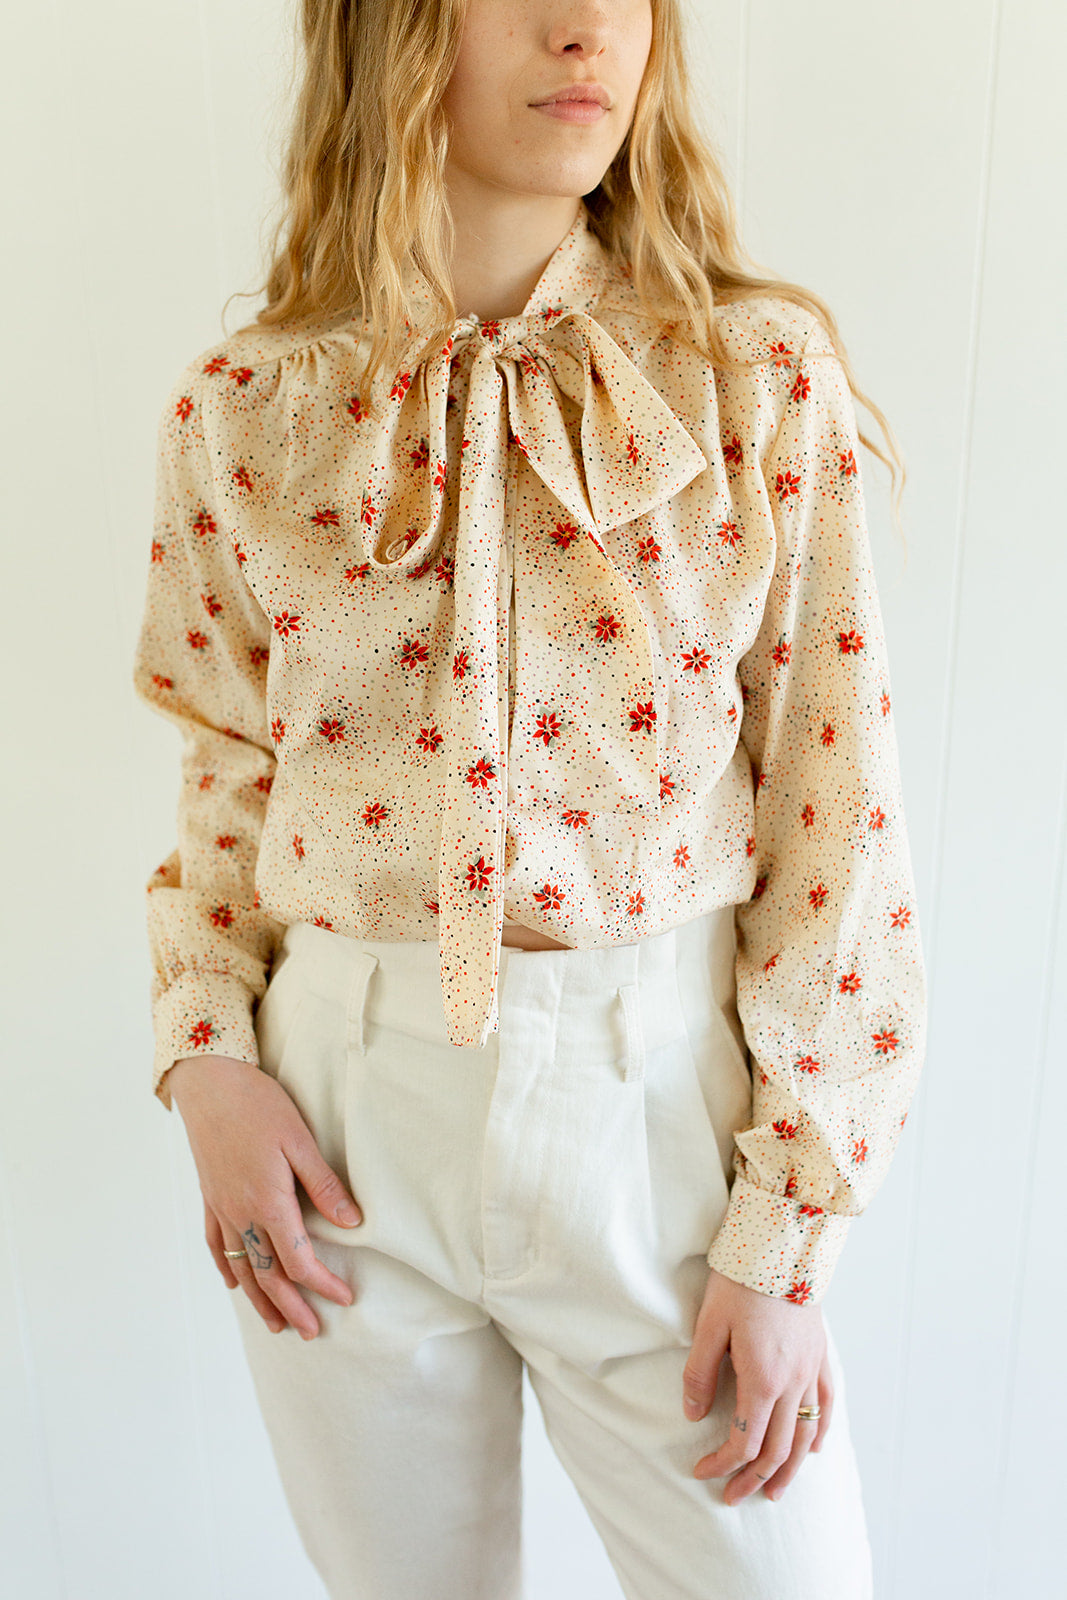 Vintage US Made Tie Collar Blouse